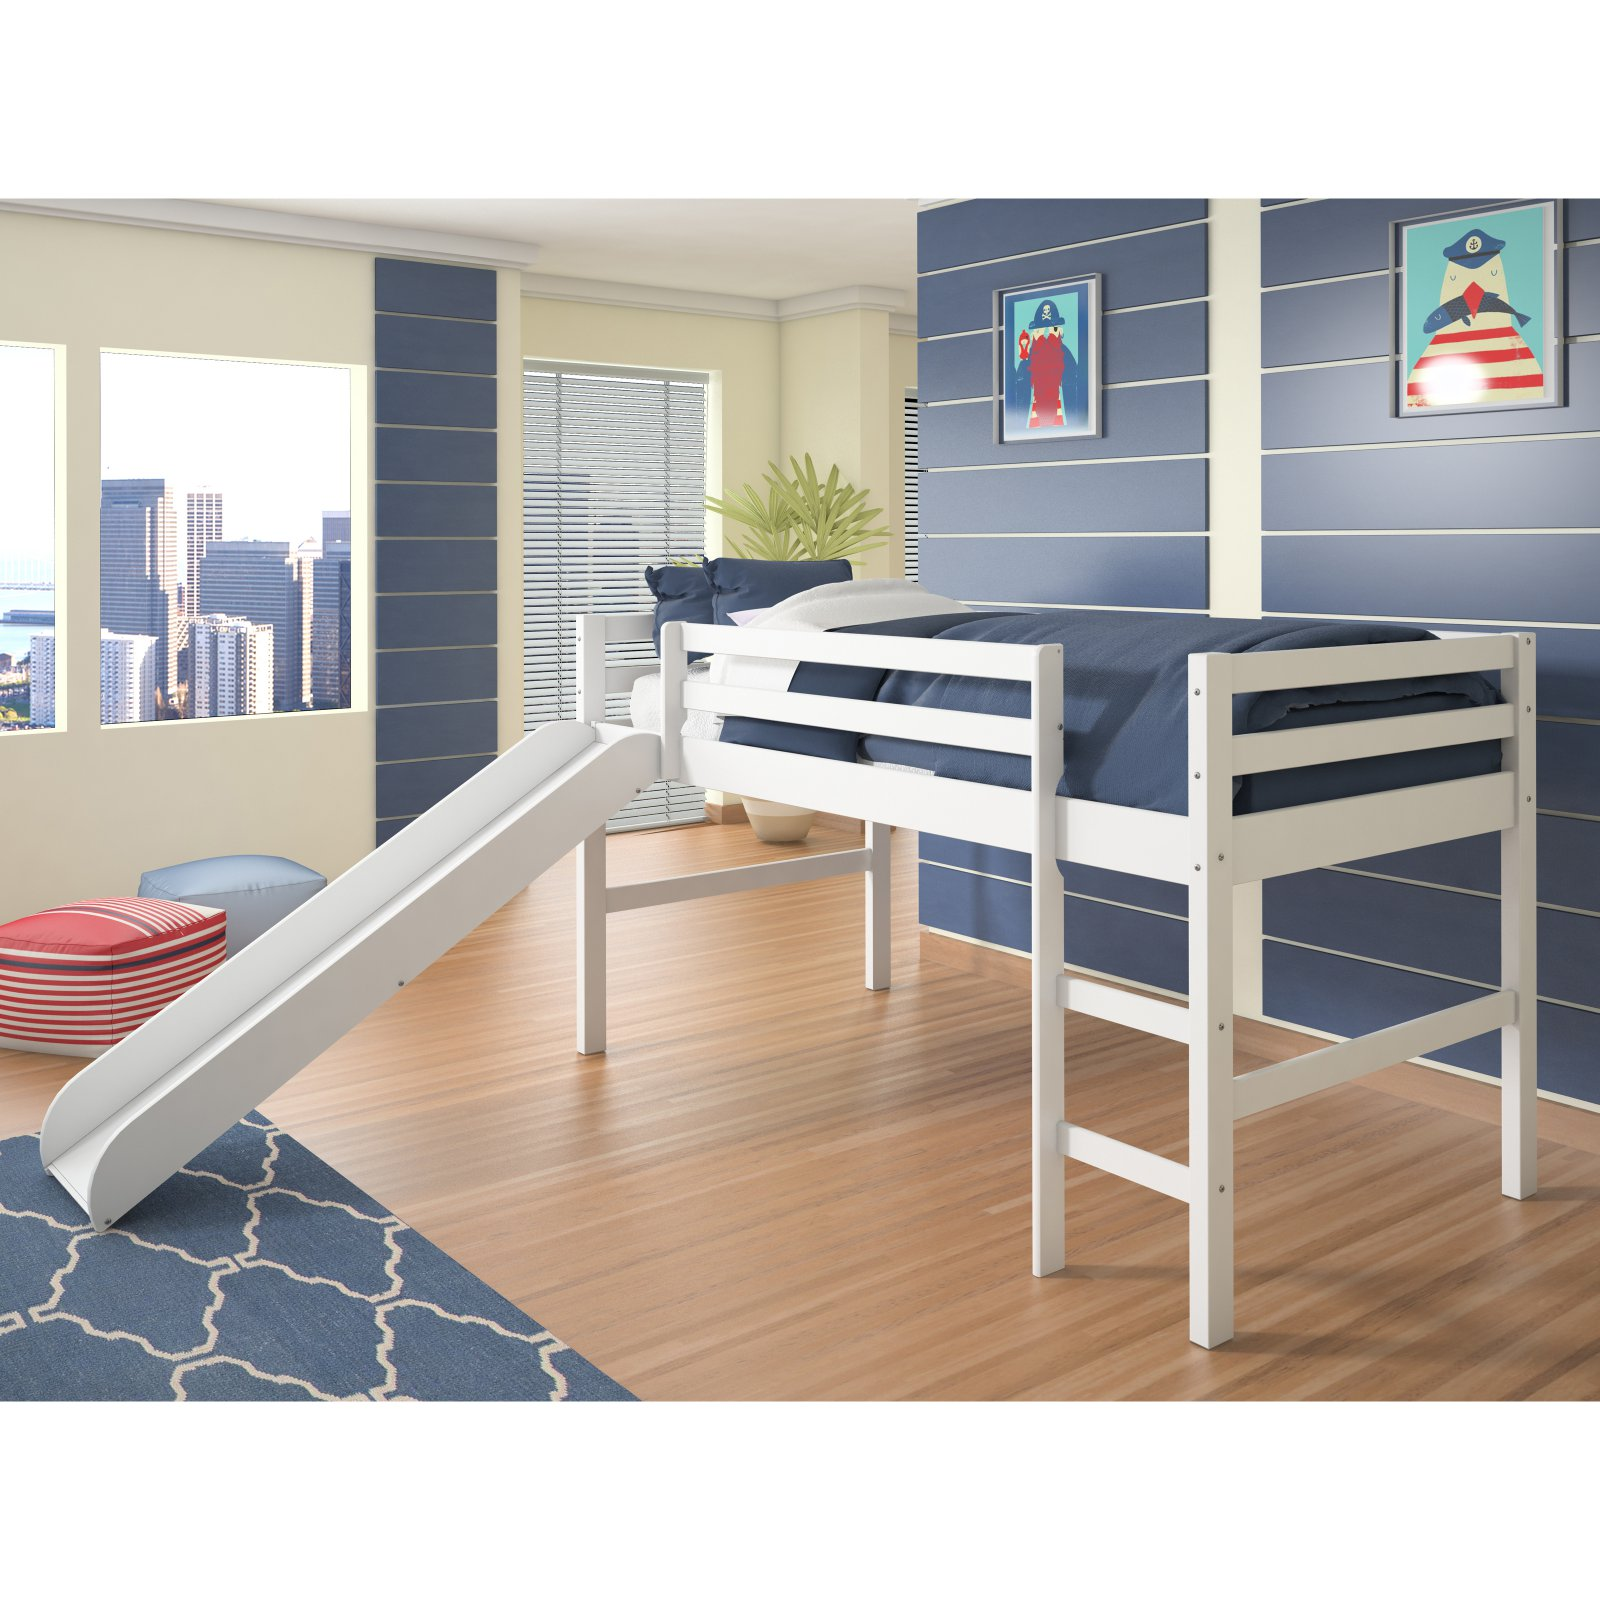 Donco Twin Low Loft Bed With Slide Walmart Com